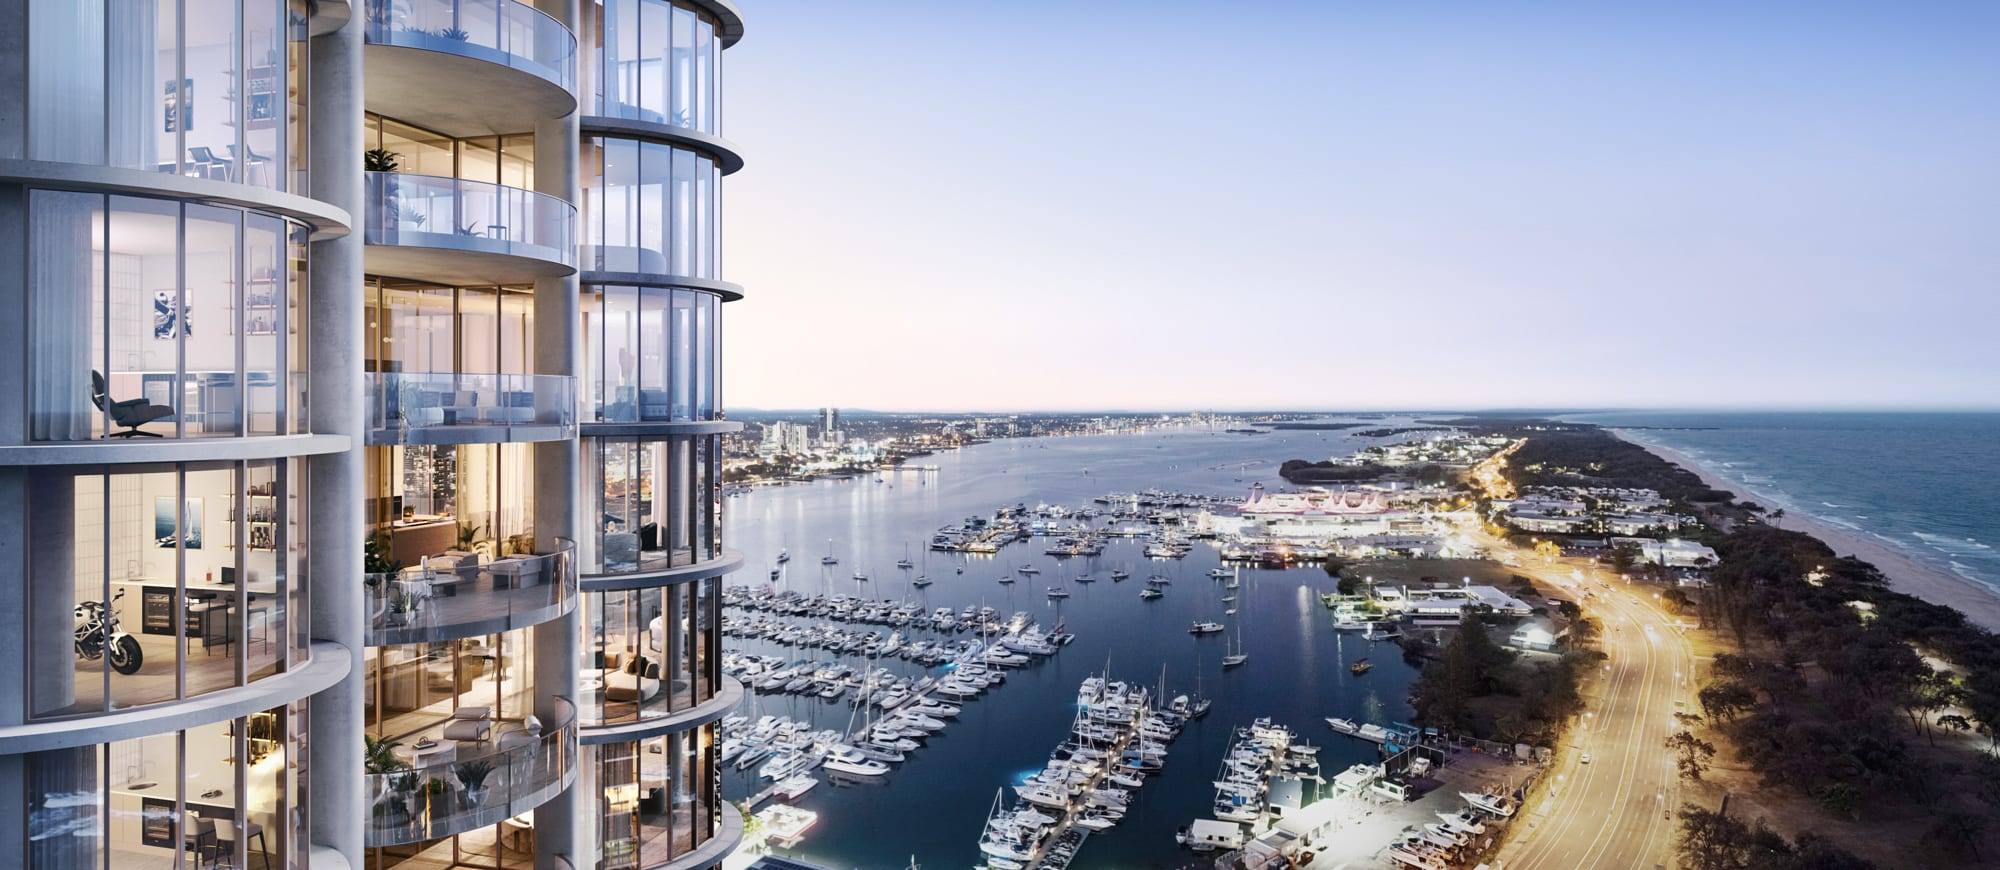 Inside the ultra-luxurious apartments at Ignite Proejcts' Main Beach project, The Monaco